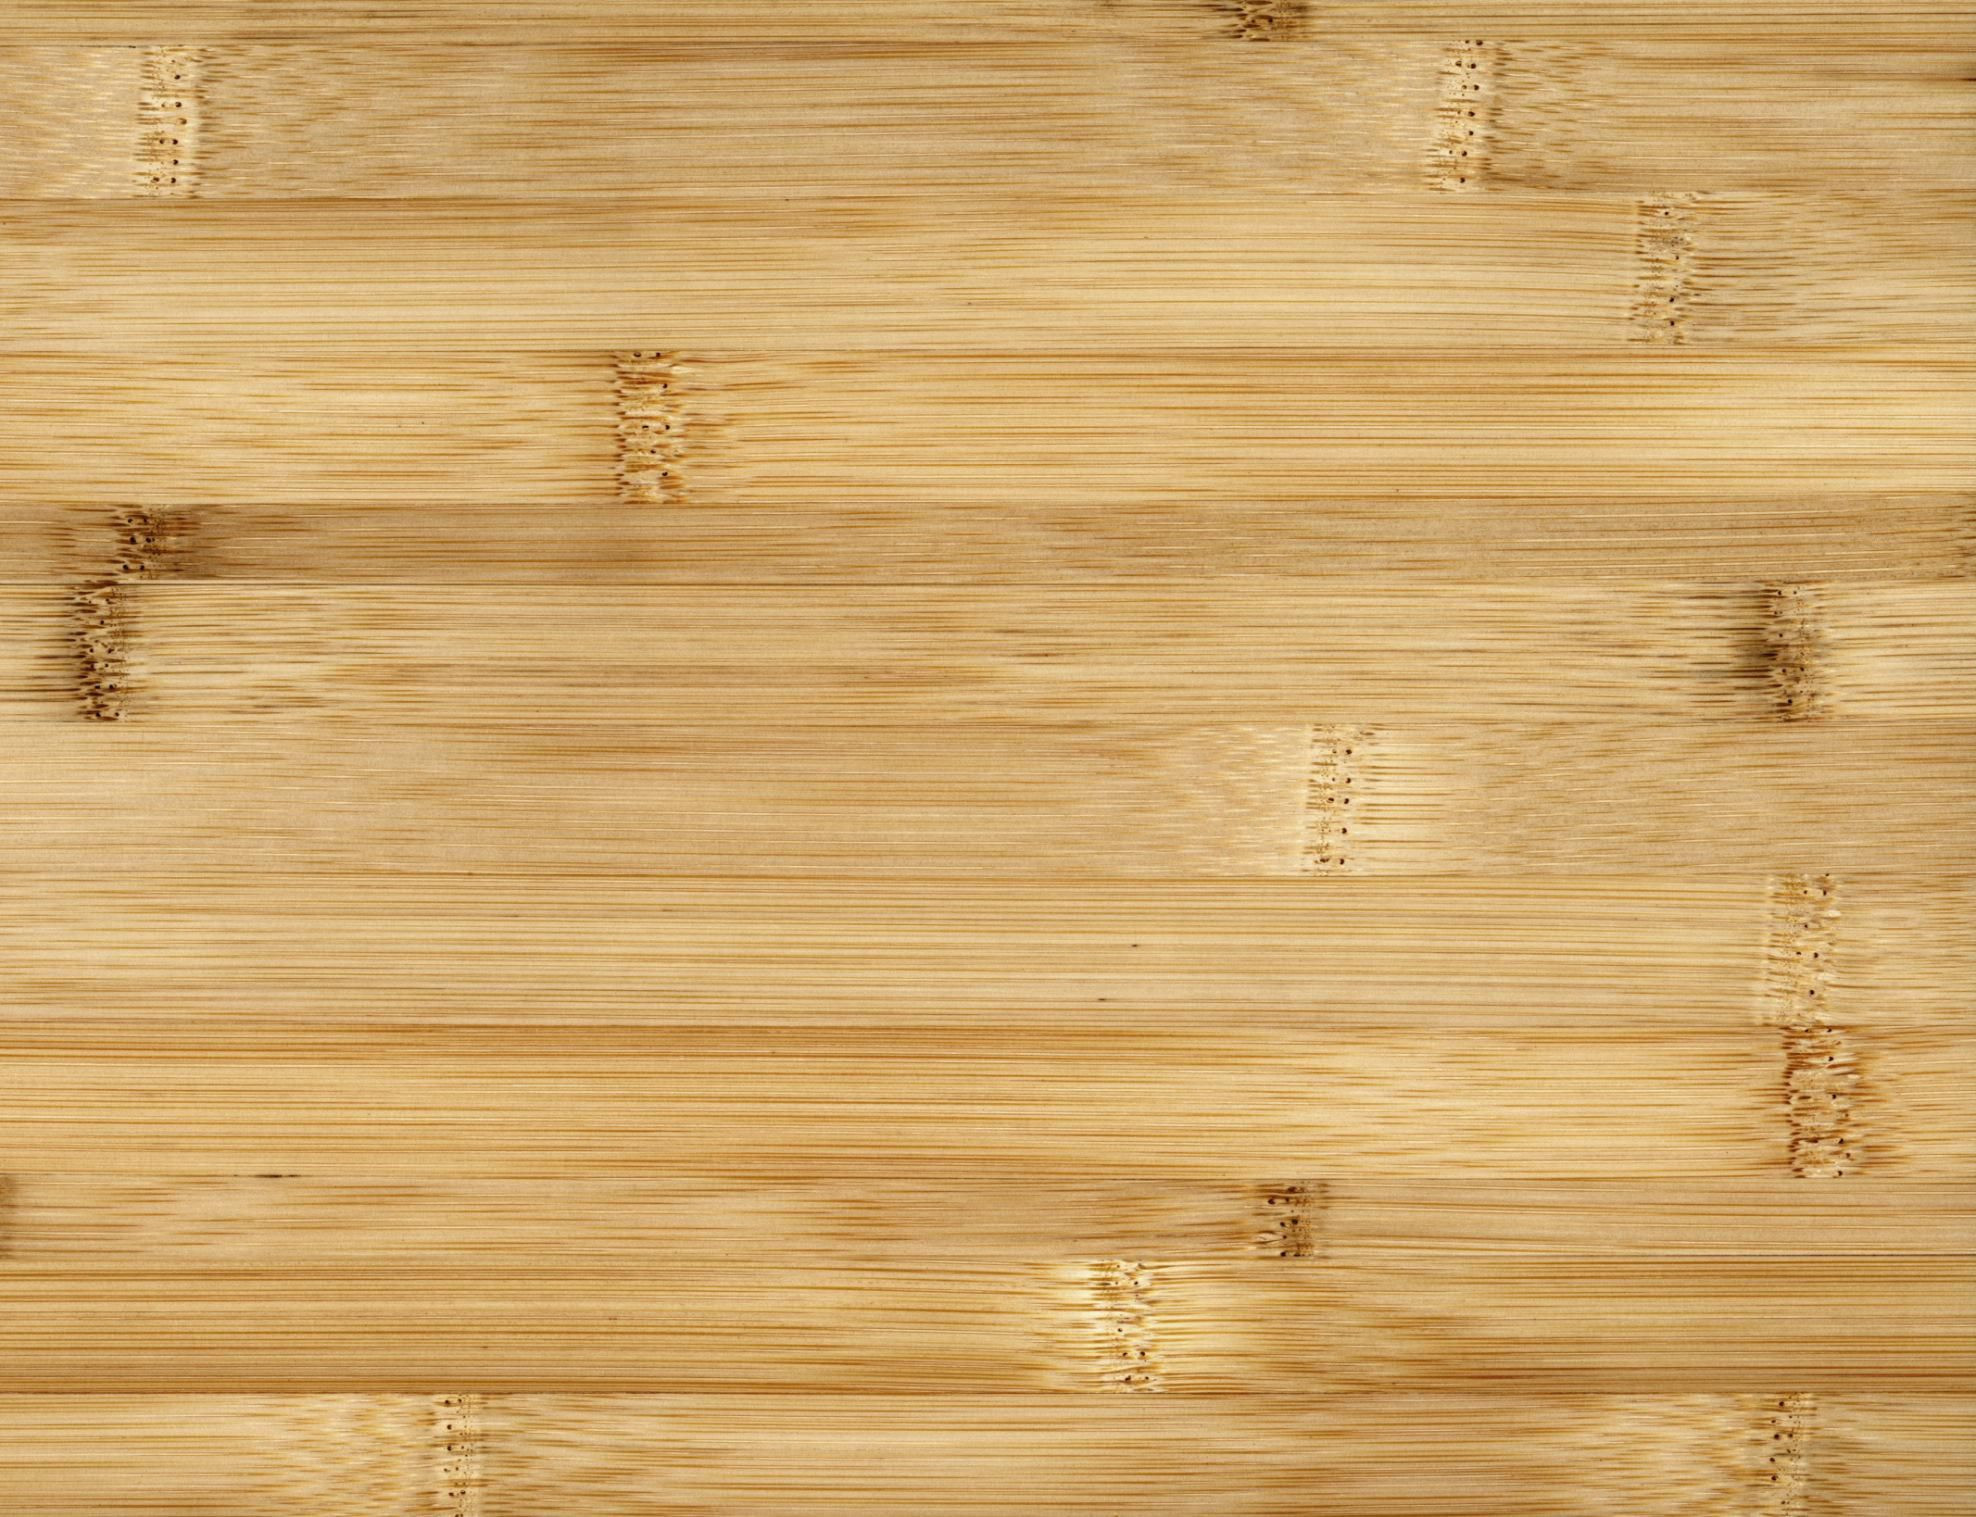 hardwood floor refinishing binghamton of how to clean bamboo flooring throughout 200266305 001 56a2fd815f9b58b7d0d000cd